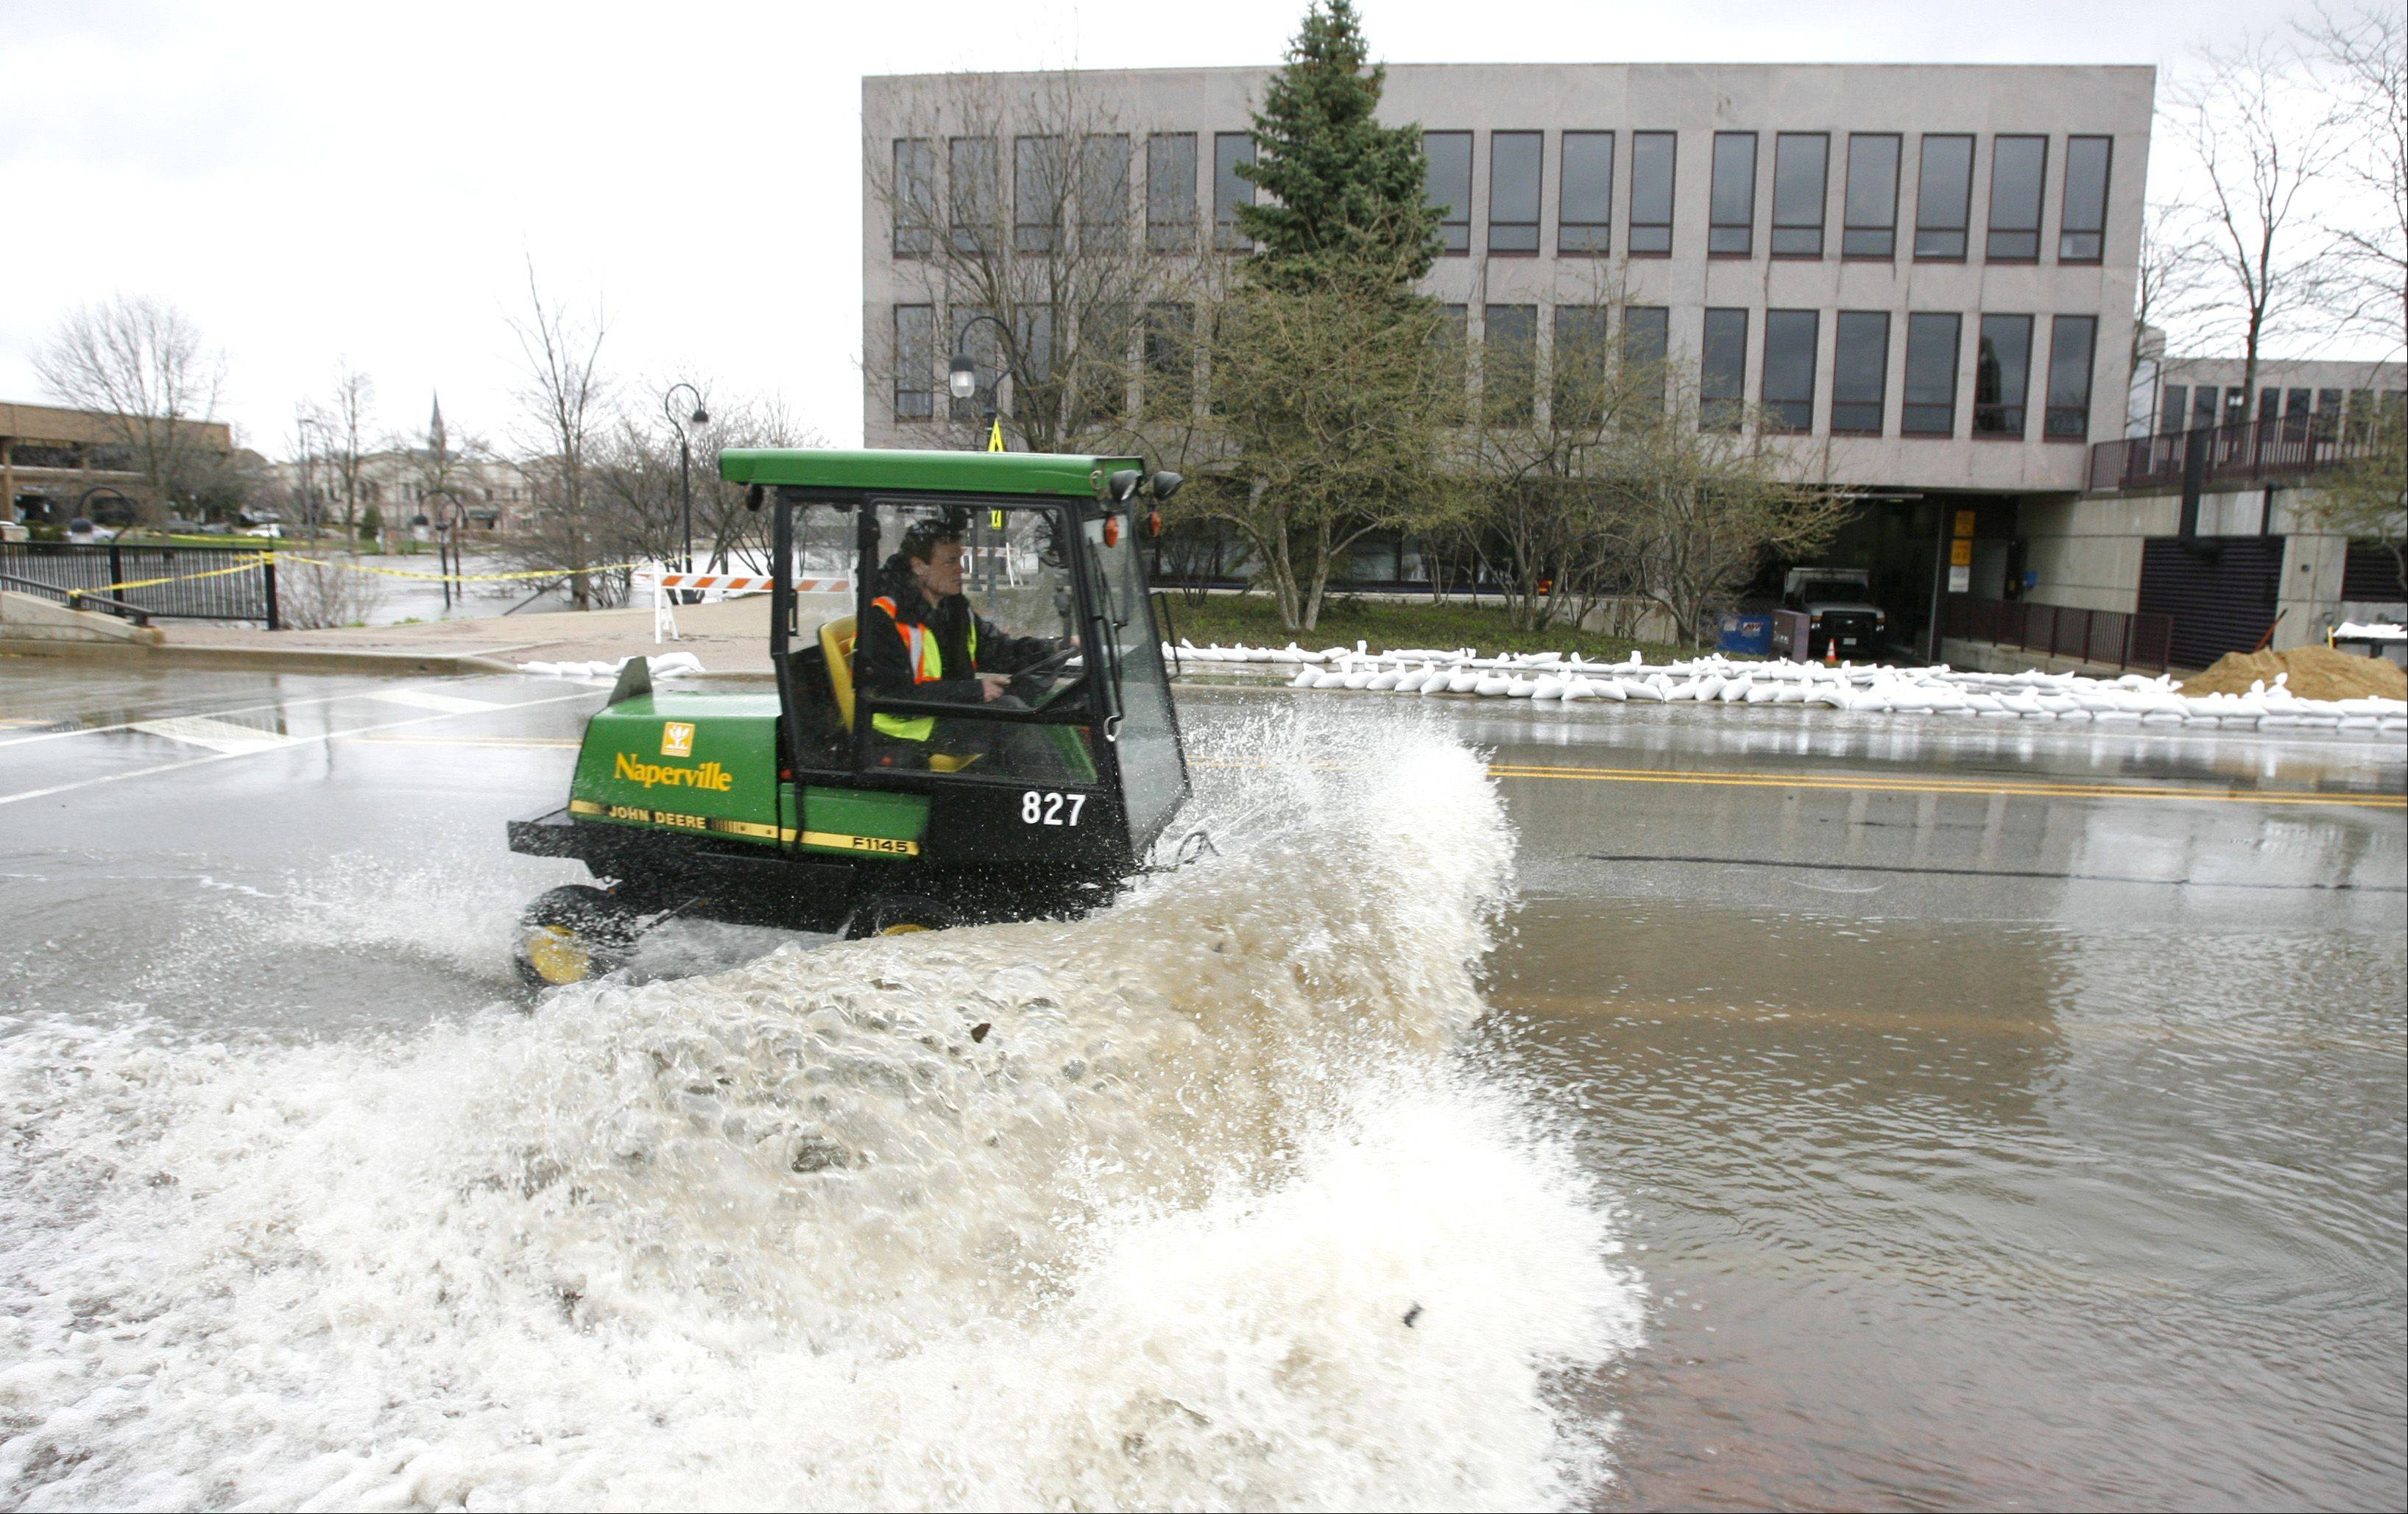 The public works department corrals water, as the city of Naperville works to clean up from downtown flooding.